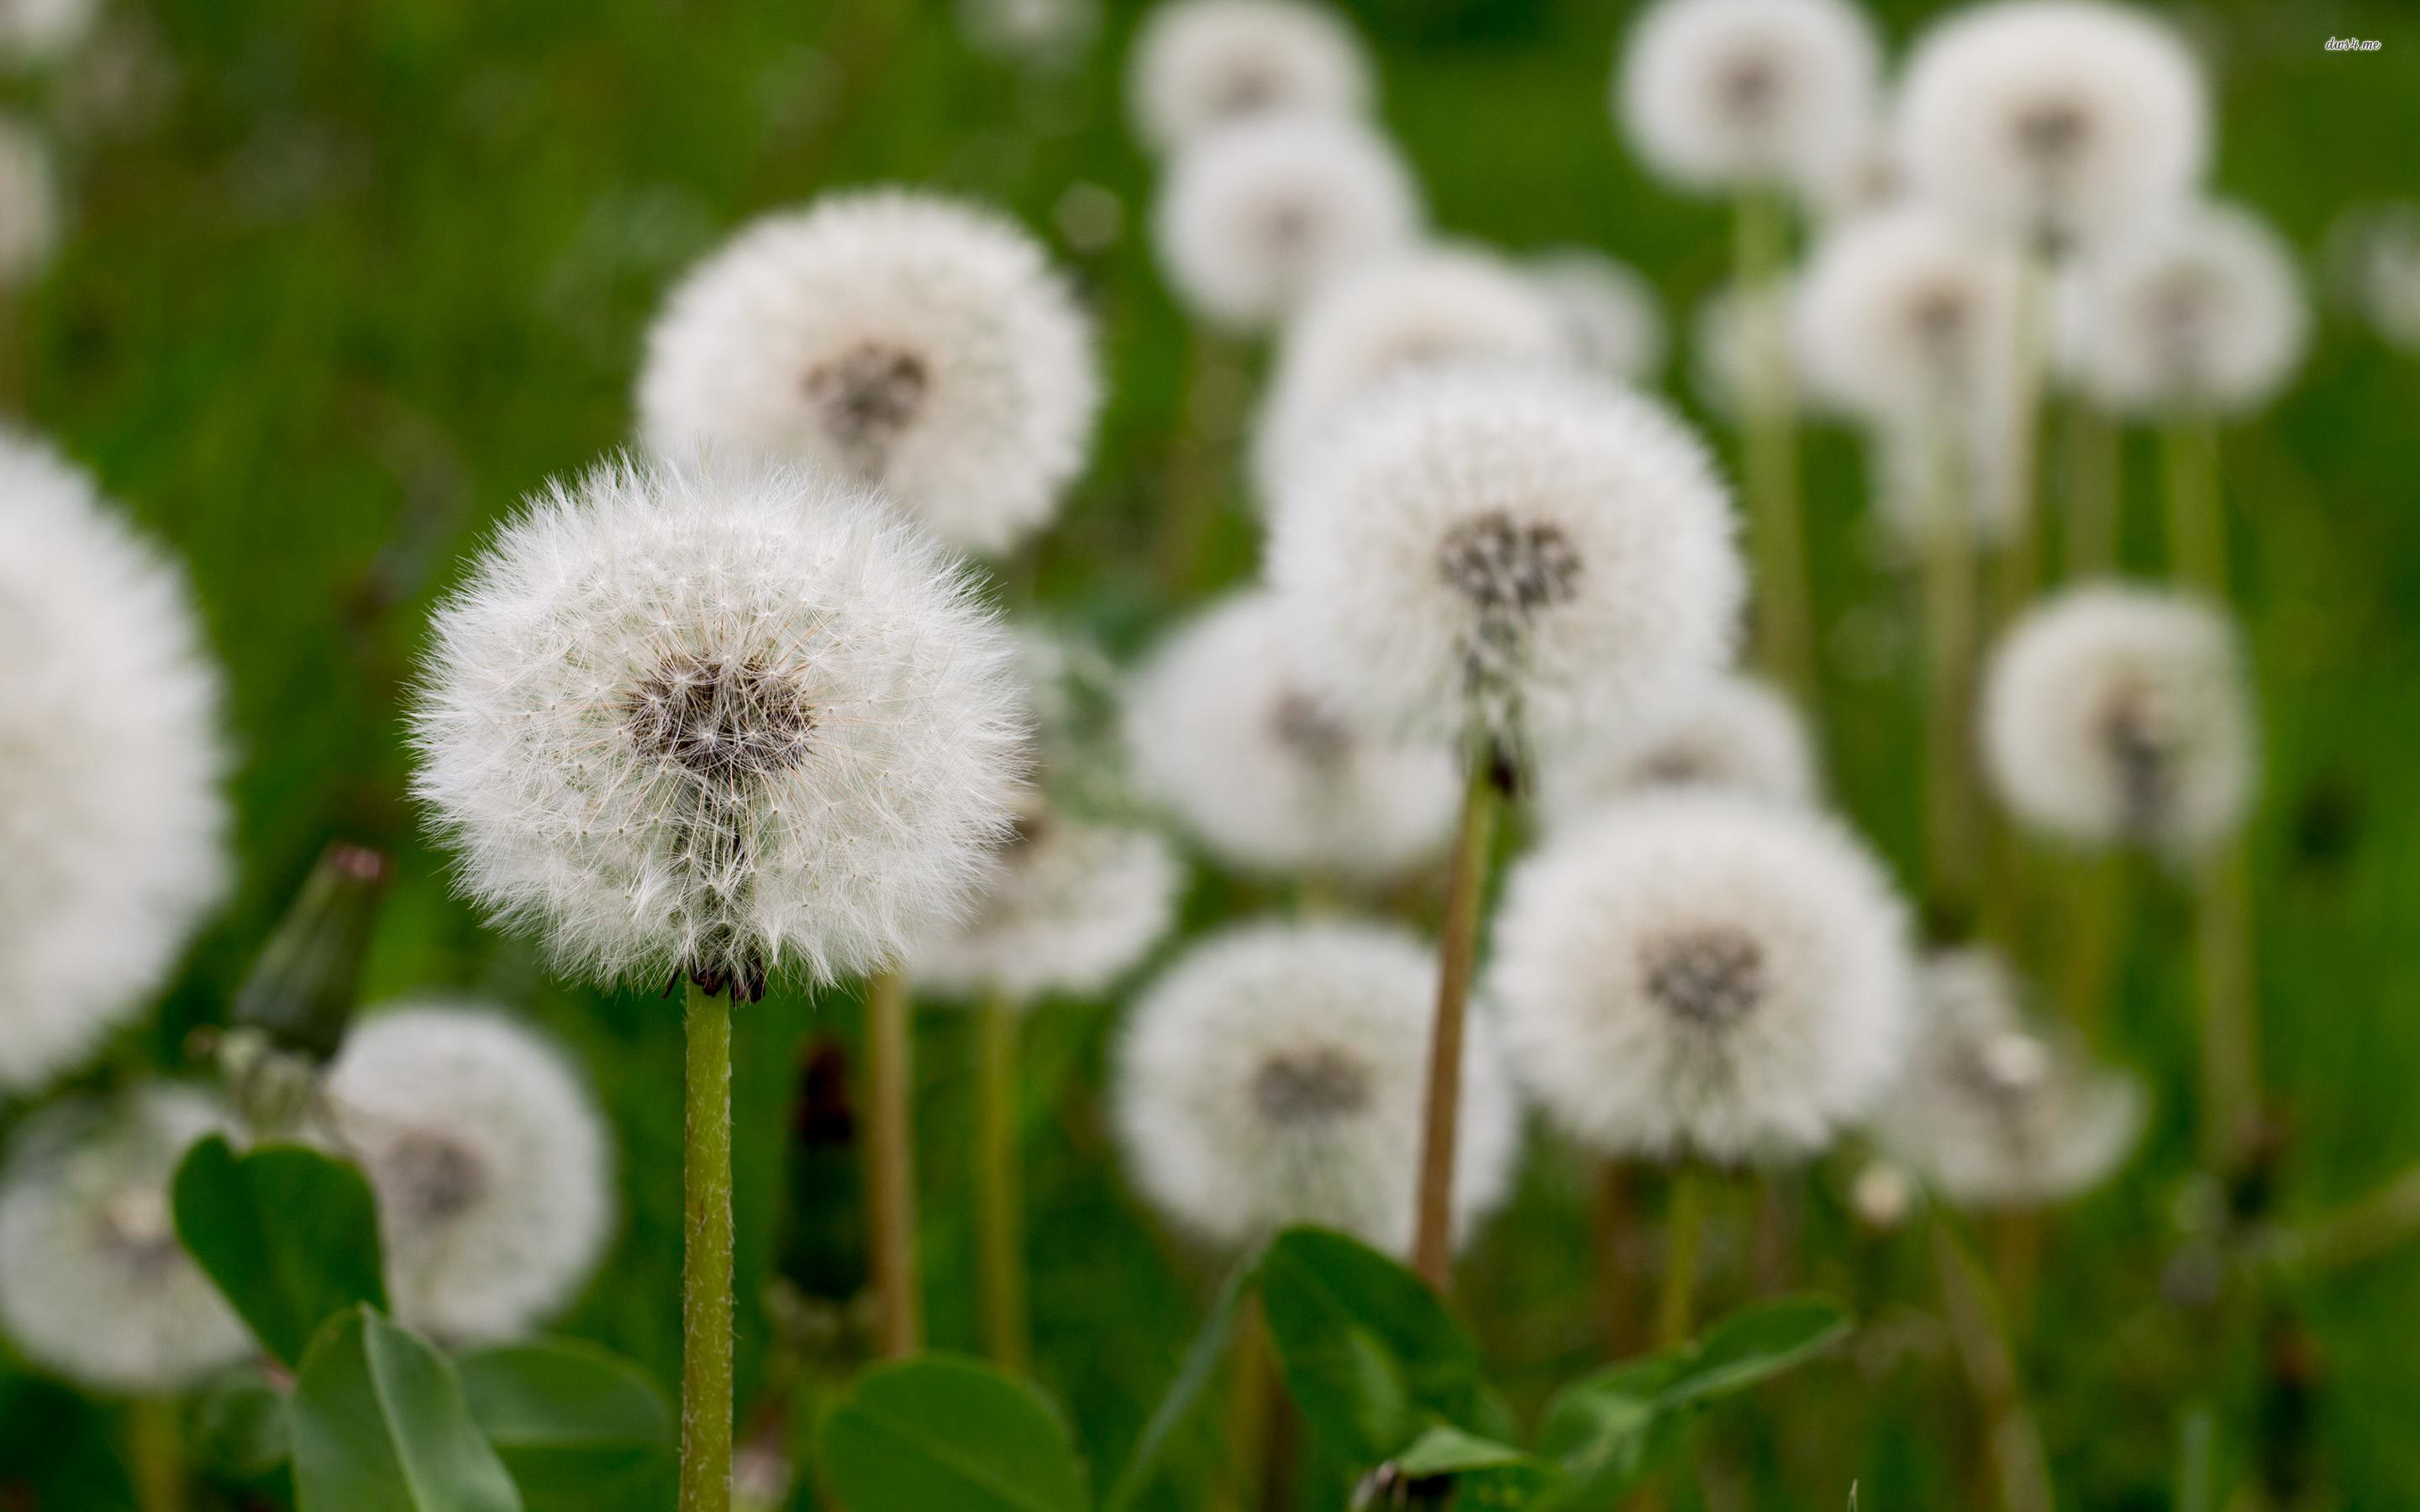 Field of blowballs on a cloudy day wallpaperFlower wallpapers 450